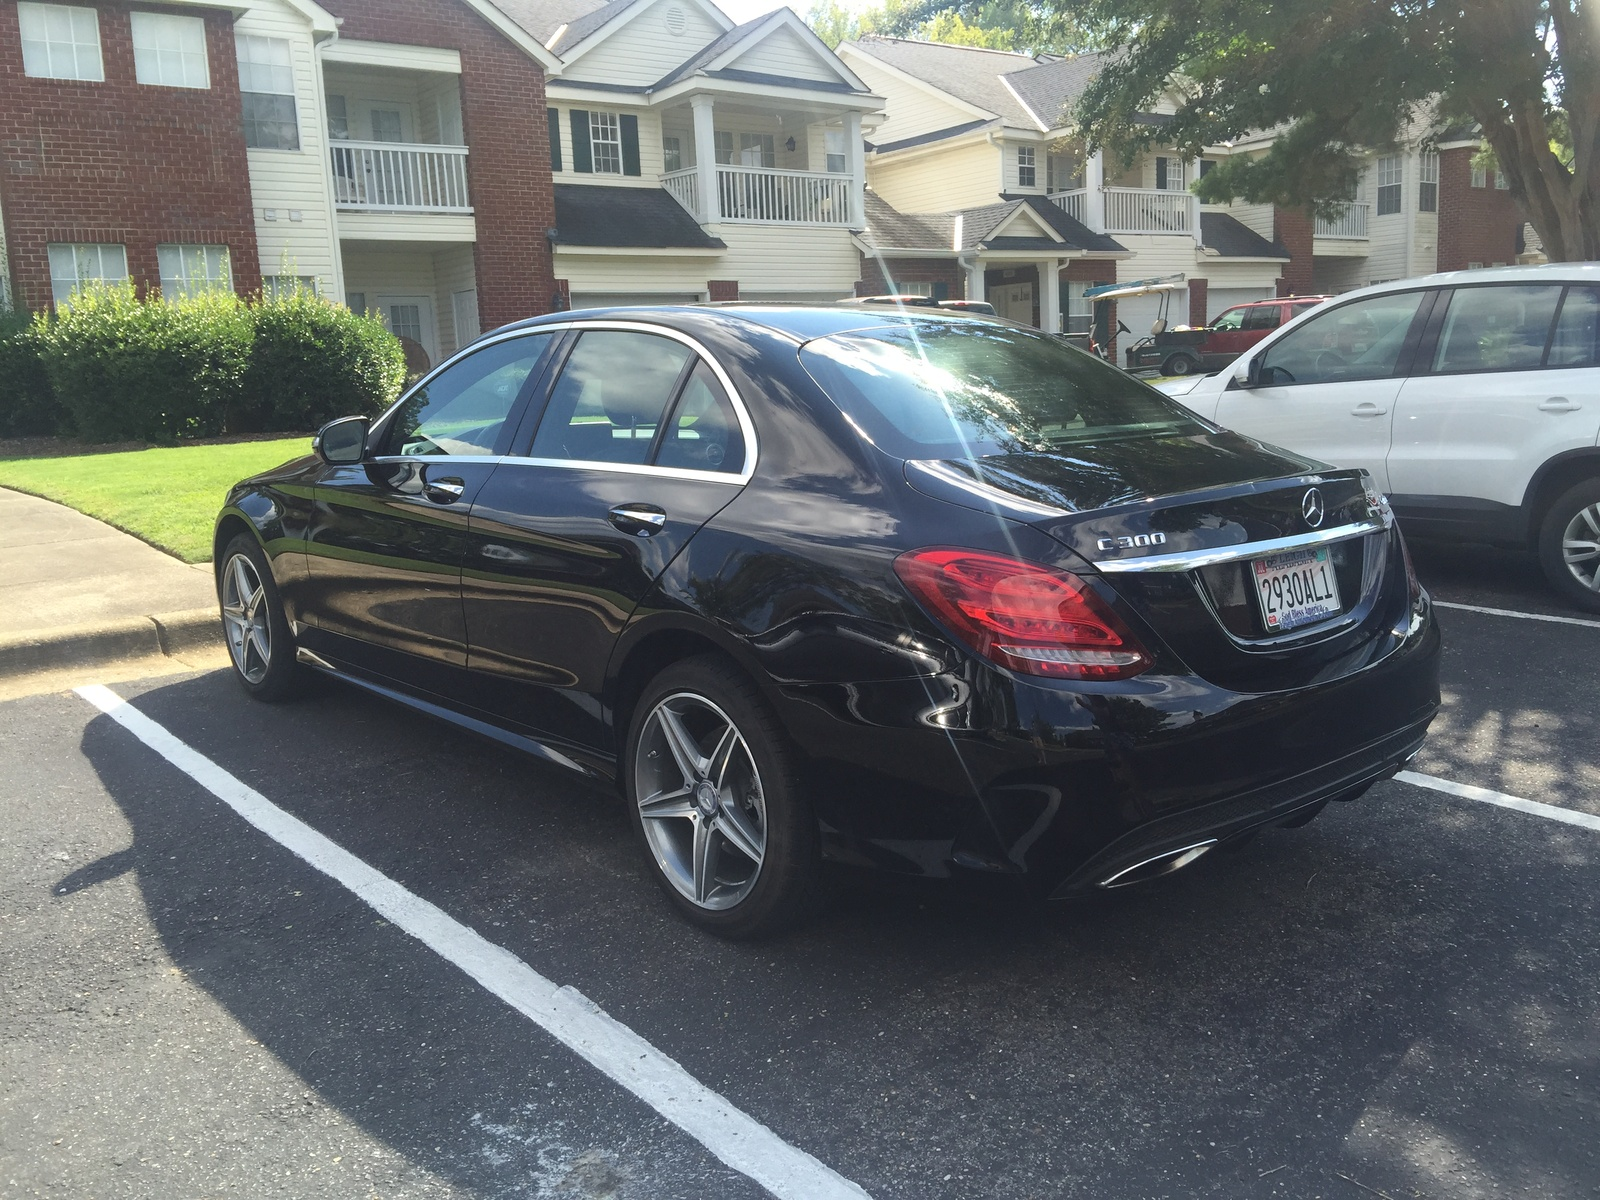 New 2015 2016 mercedes benz c class for sale cargurus for Mercedes benz for sale cargurus